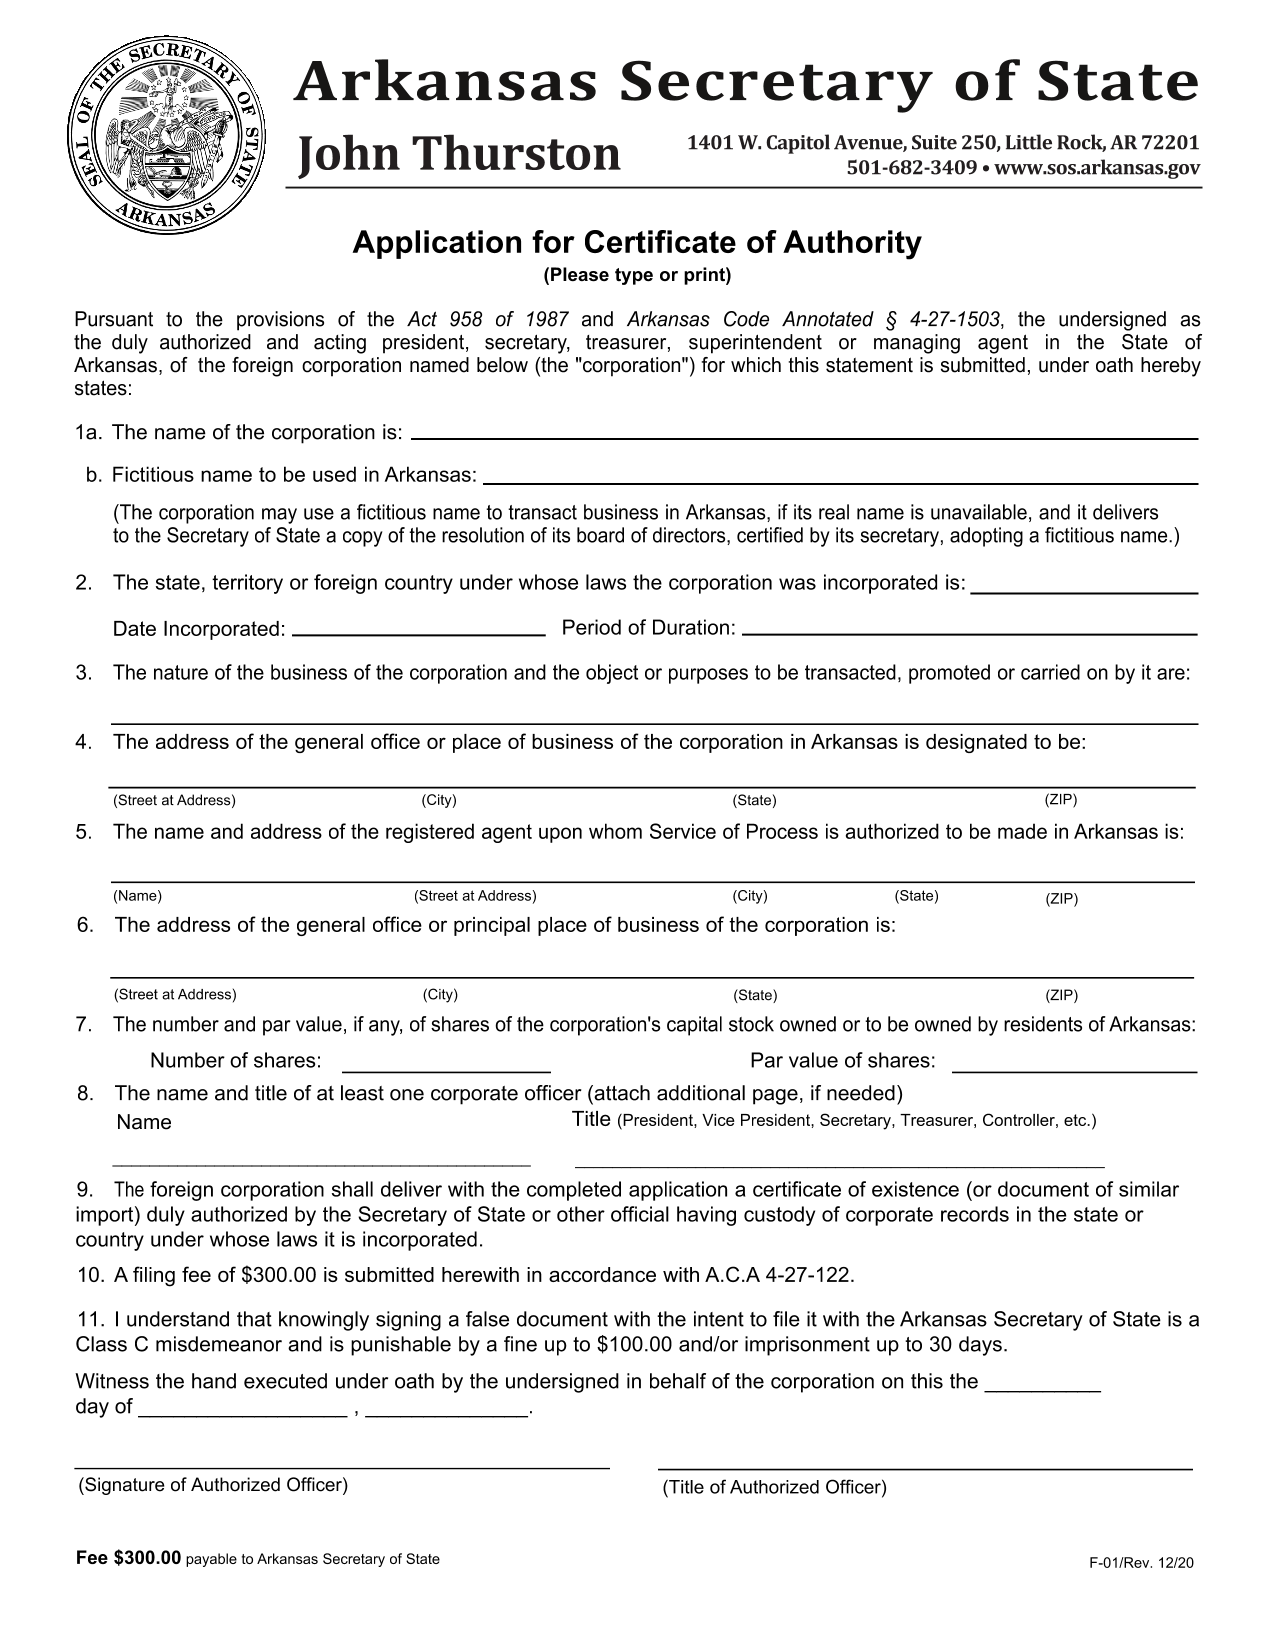 arkansas-foreign-corporation-application-for-certificate-of-authority